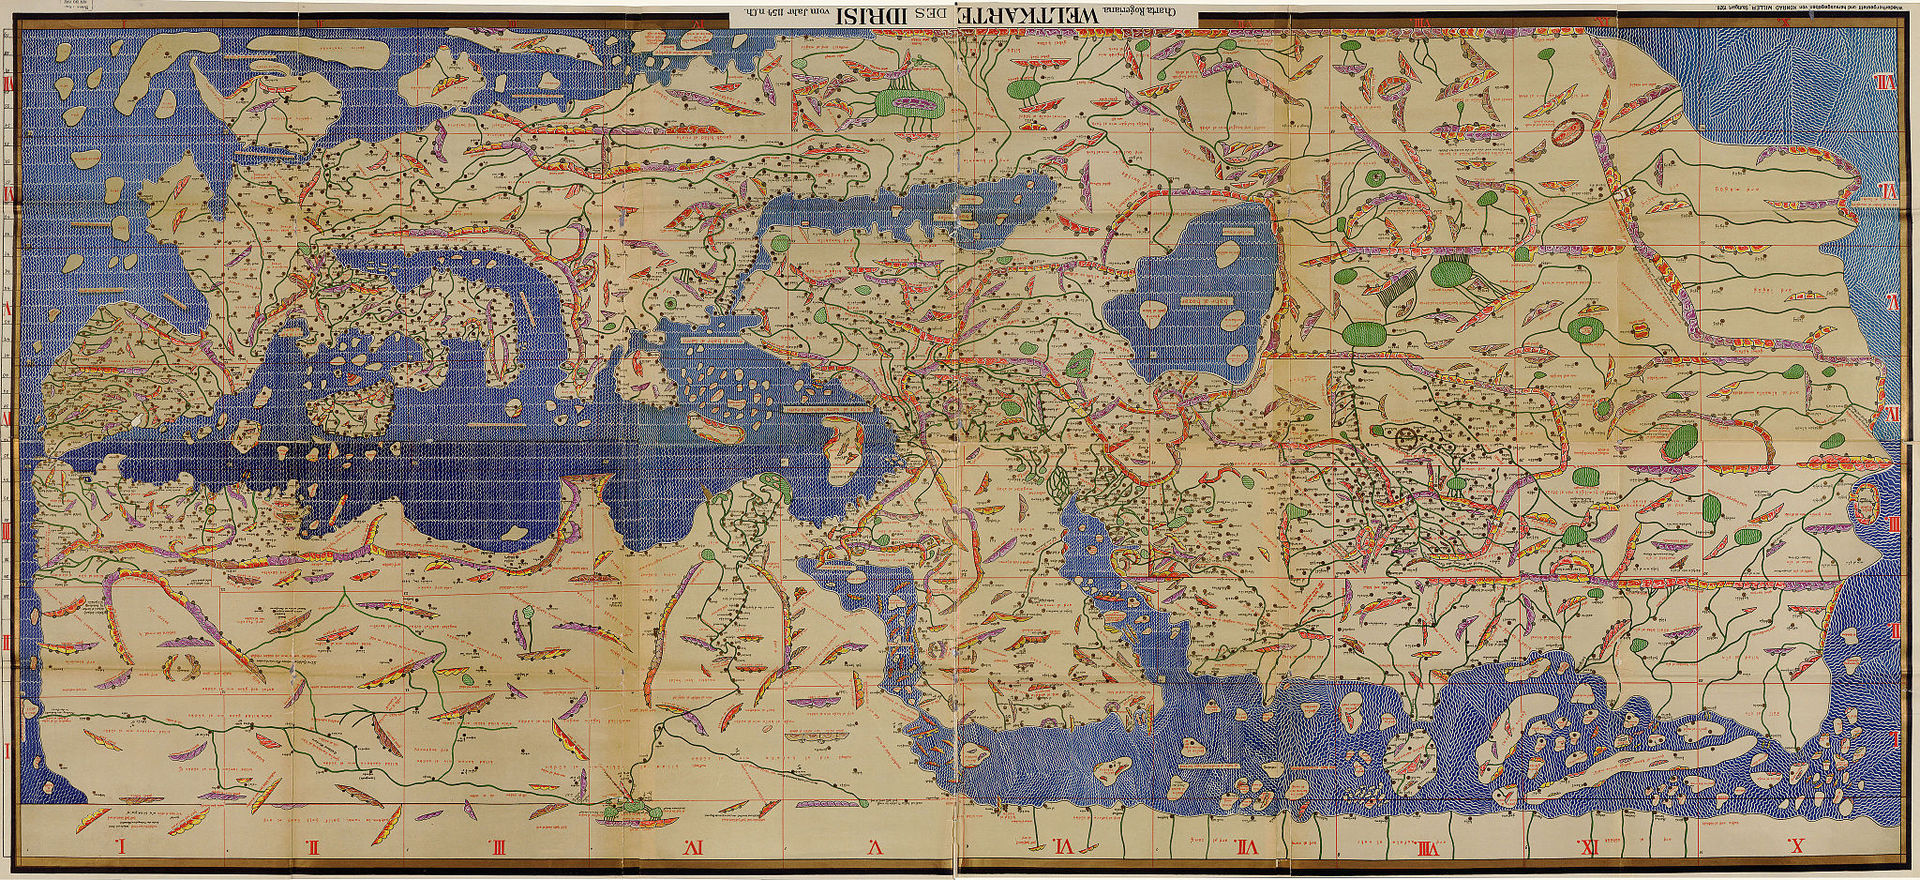 Al idrisi 12th century ce 5th century ah geographer and al idrisi 12th century ce 5th century ah geographer and cartographer gumiabroncs Image collections